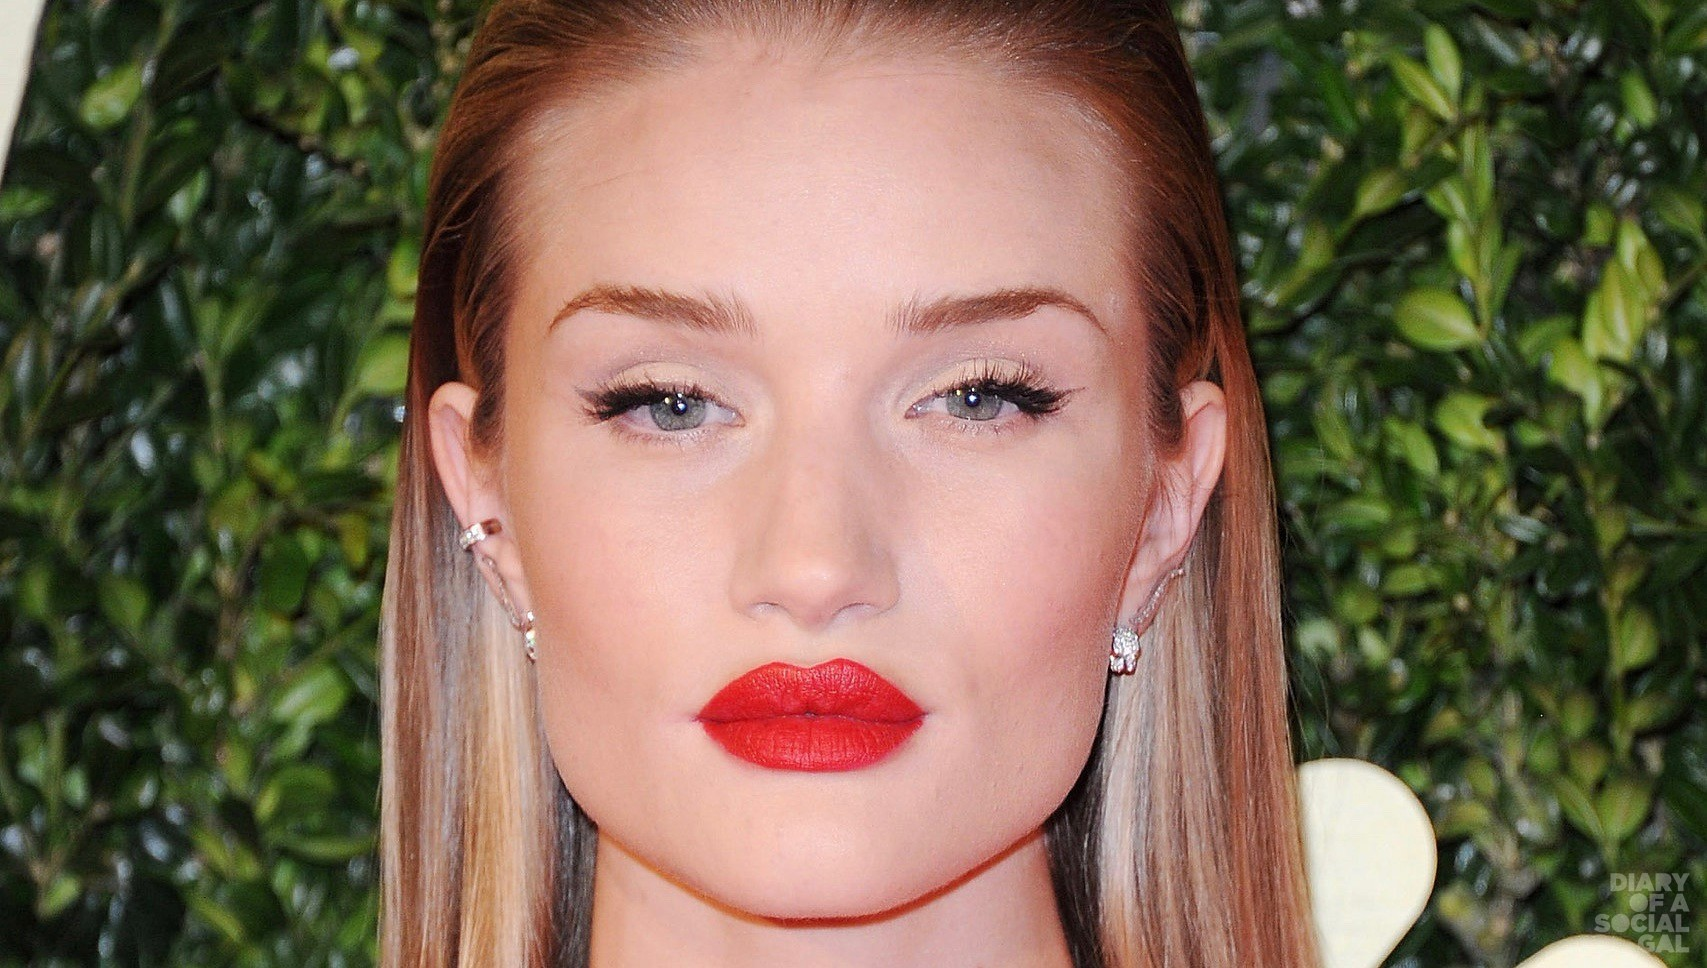 her-hair-slicked-back-Rosie-Huntington-Whiteley-bright-red (3)